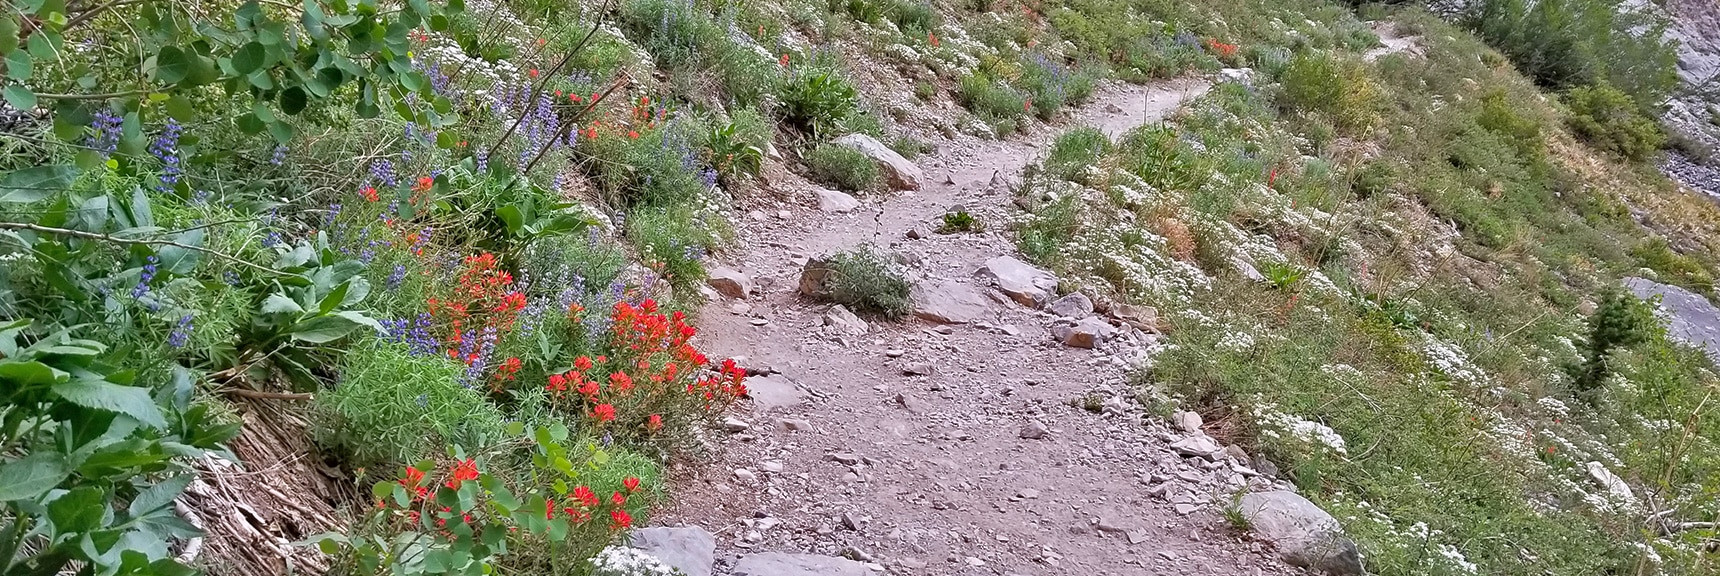 More Spring Wildflowers: Indian Paintbrush (red) Lupine (blue) | Sexton Ridge Descent from Griffith Peak, Mt. Charleston Wilderness, Spring Mountains, Nevada